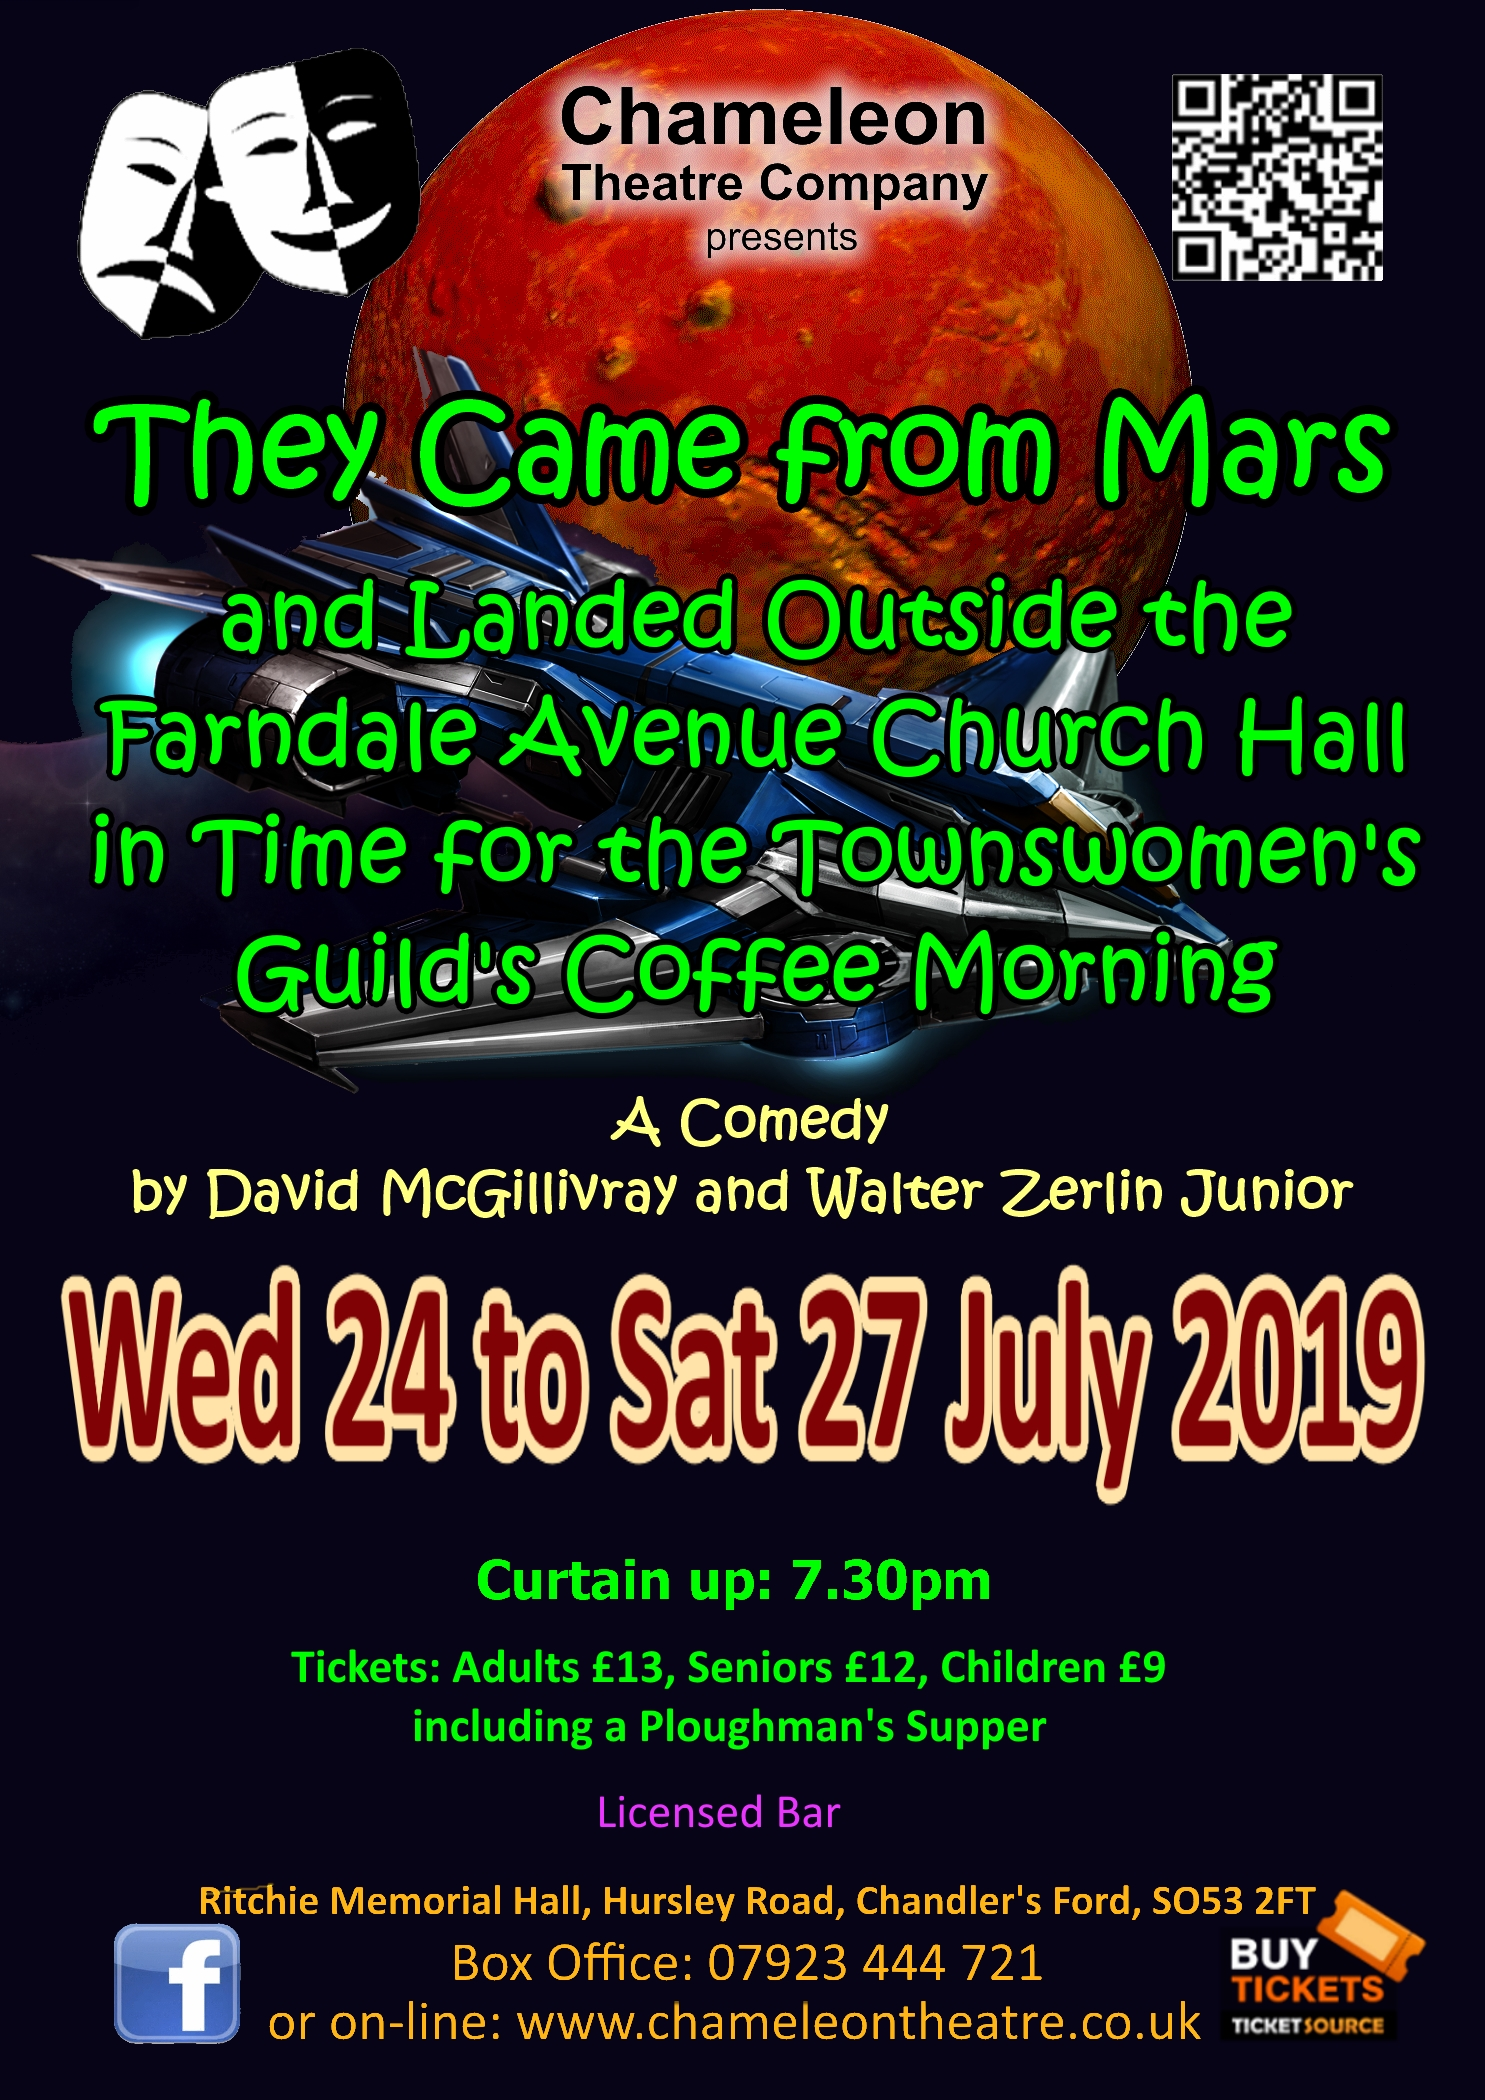 They Came from Mars and Landed Outside the Farndale Avenue Church Hall in Time for the Townswomen's Guild's Coffee Morning